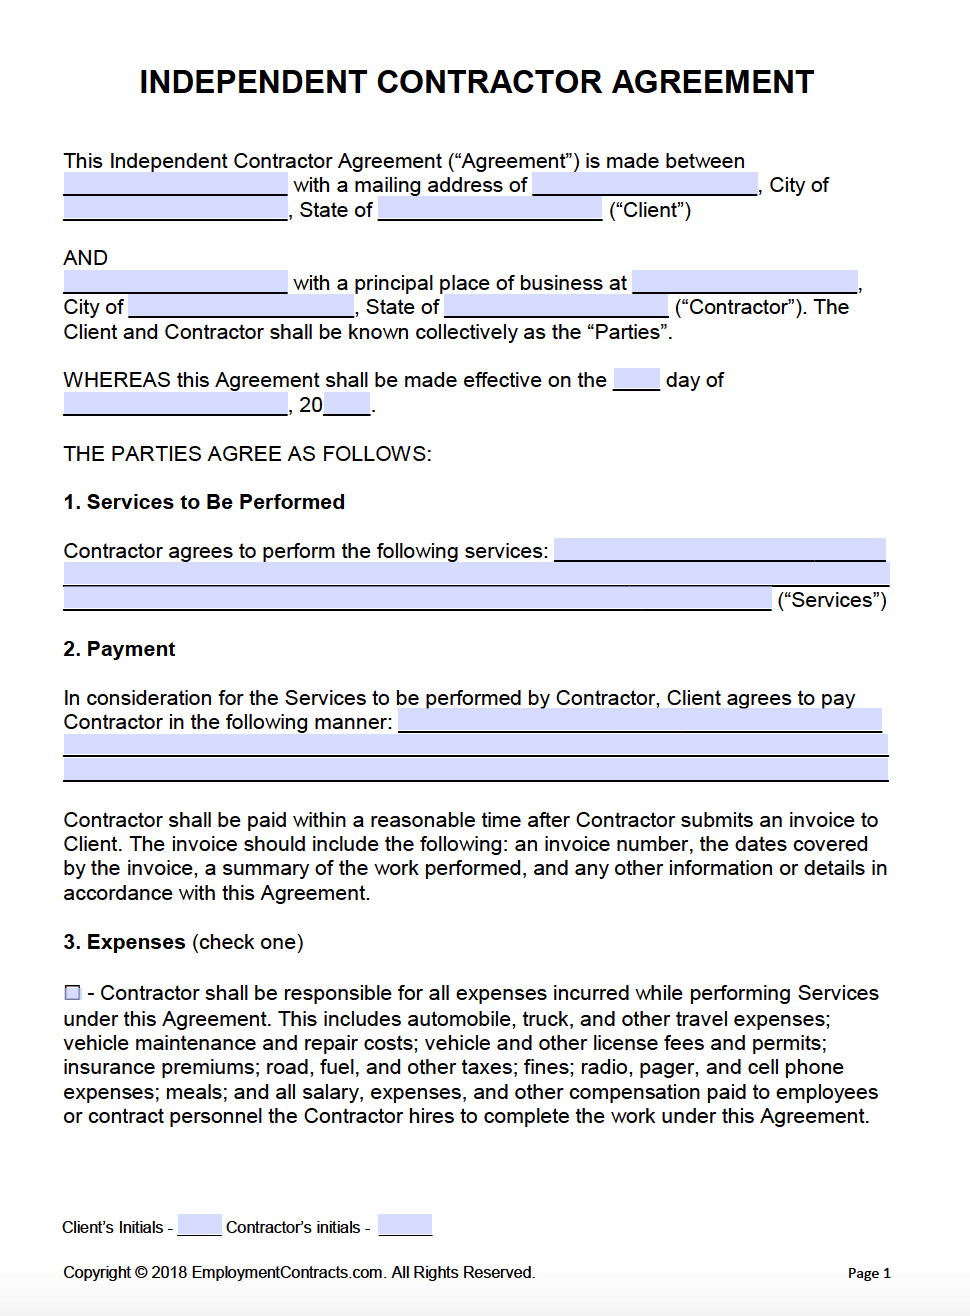 Independent Contractor Agreement Pdf Word